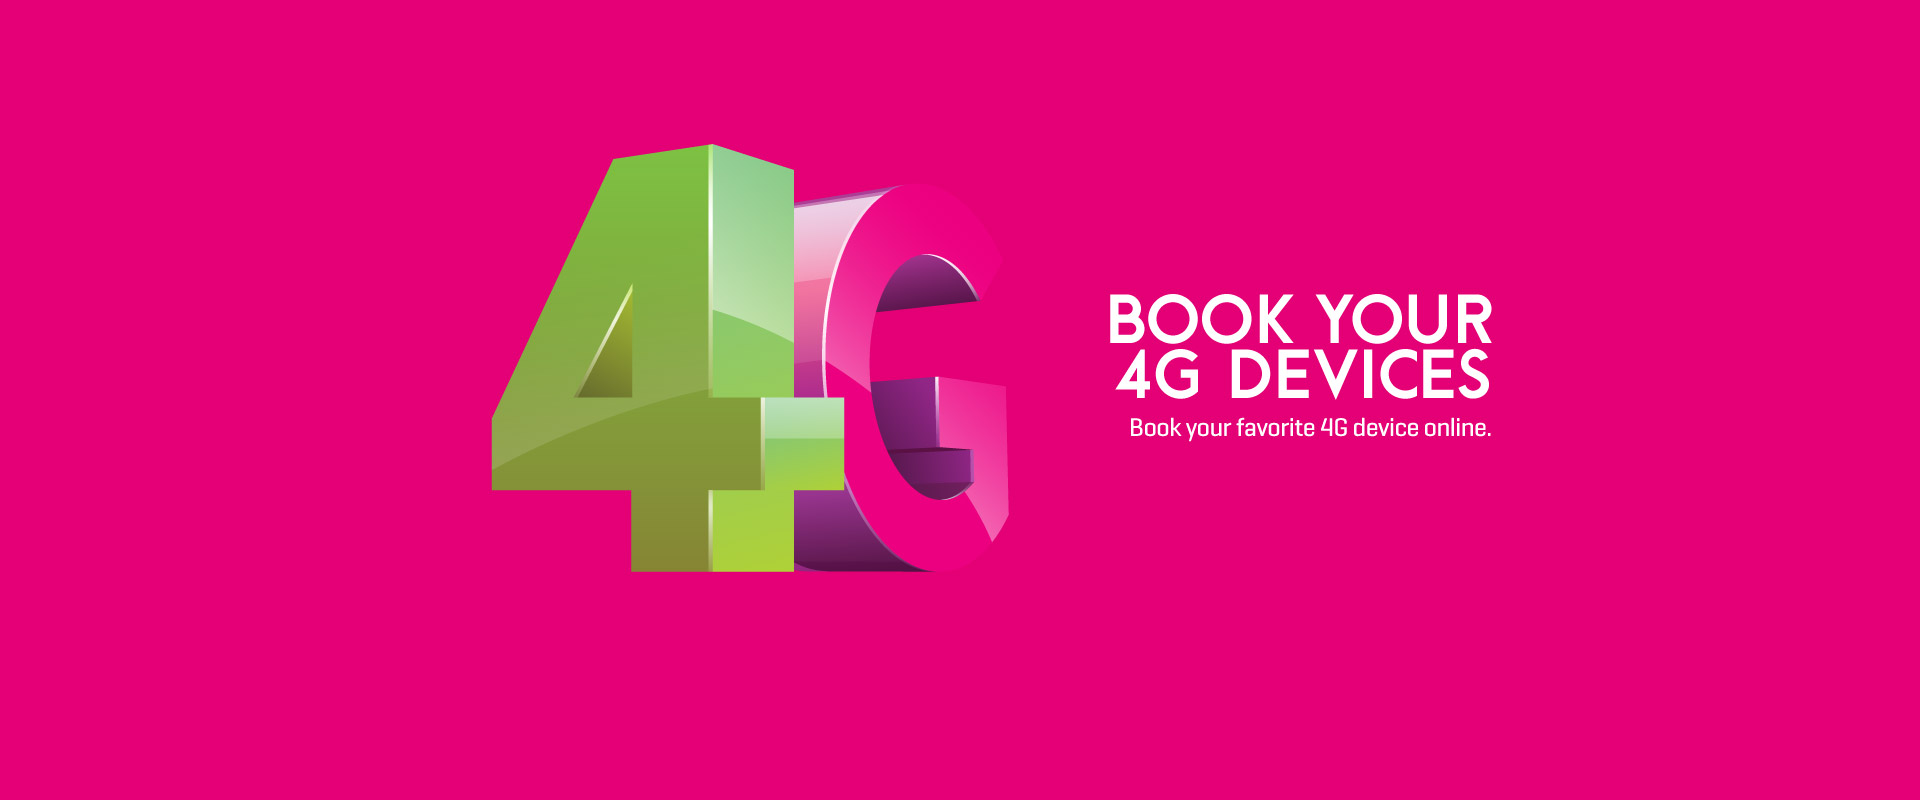 Book 4G Internet Device - Zong Internet Devices